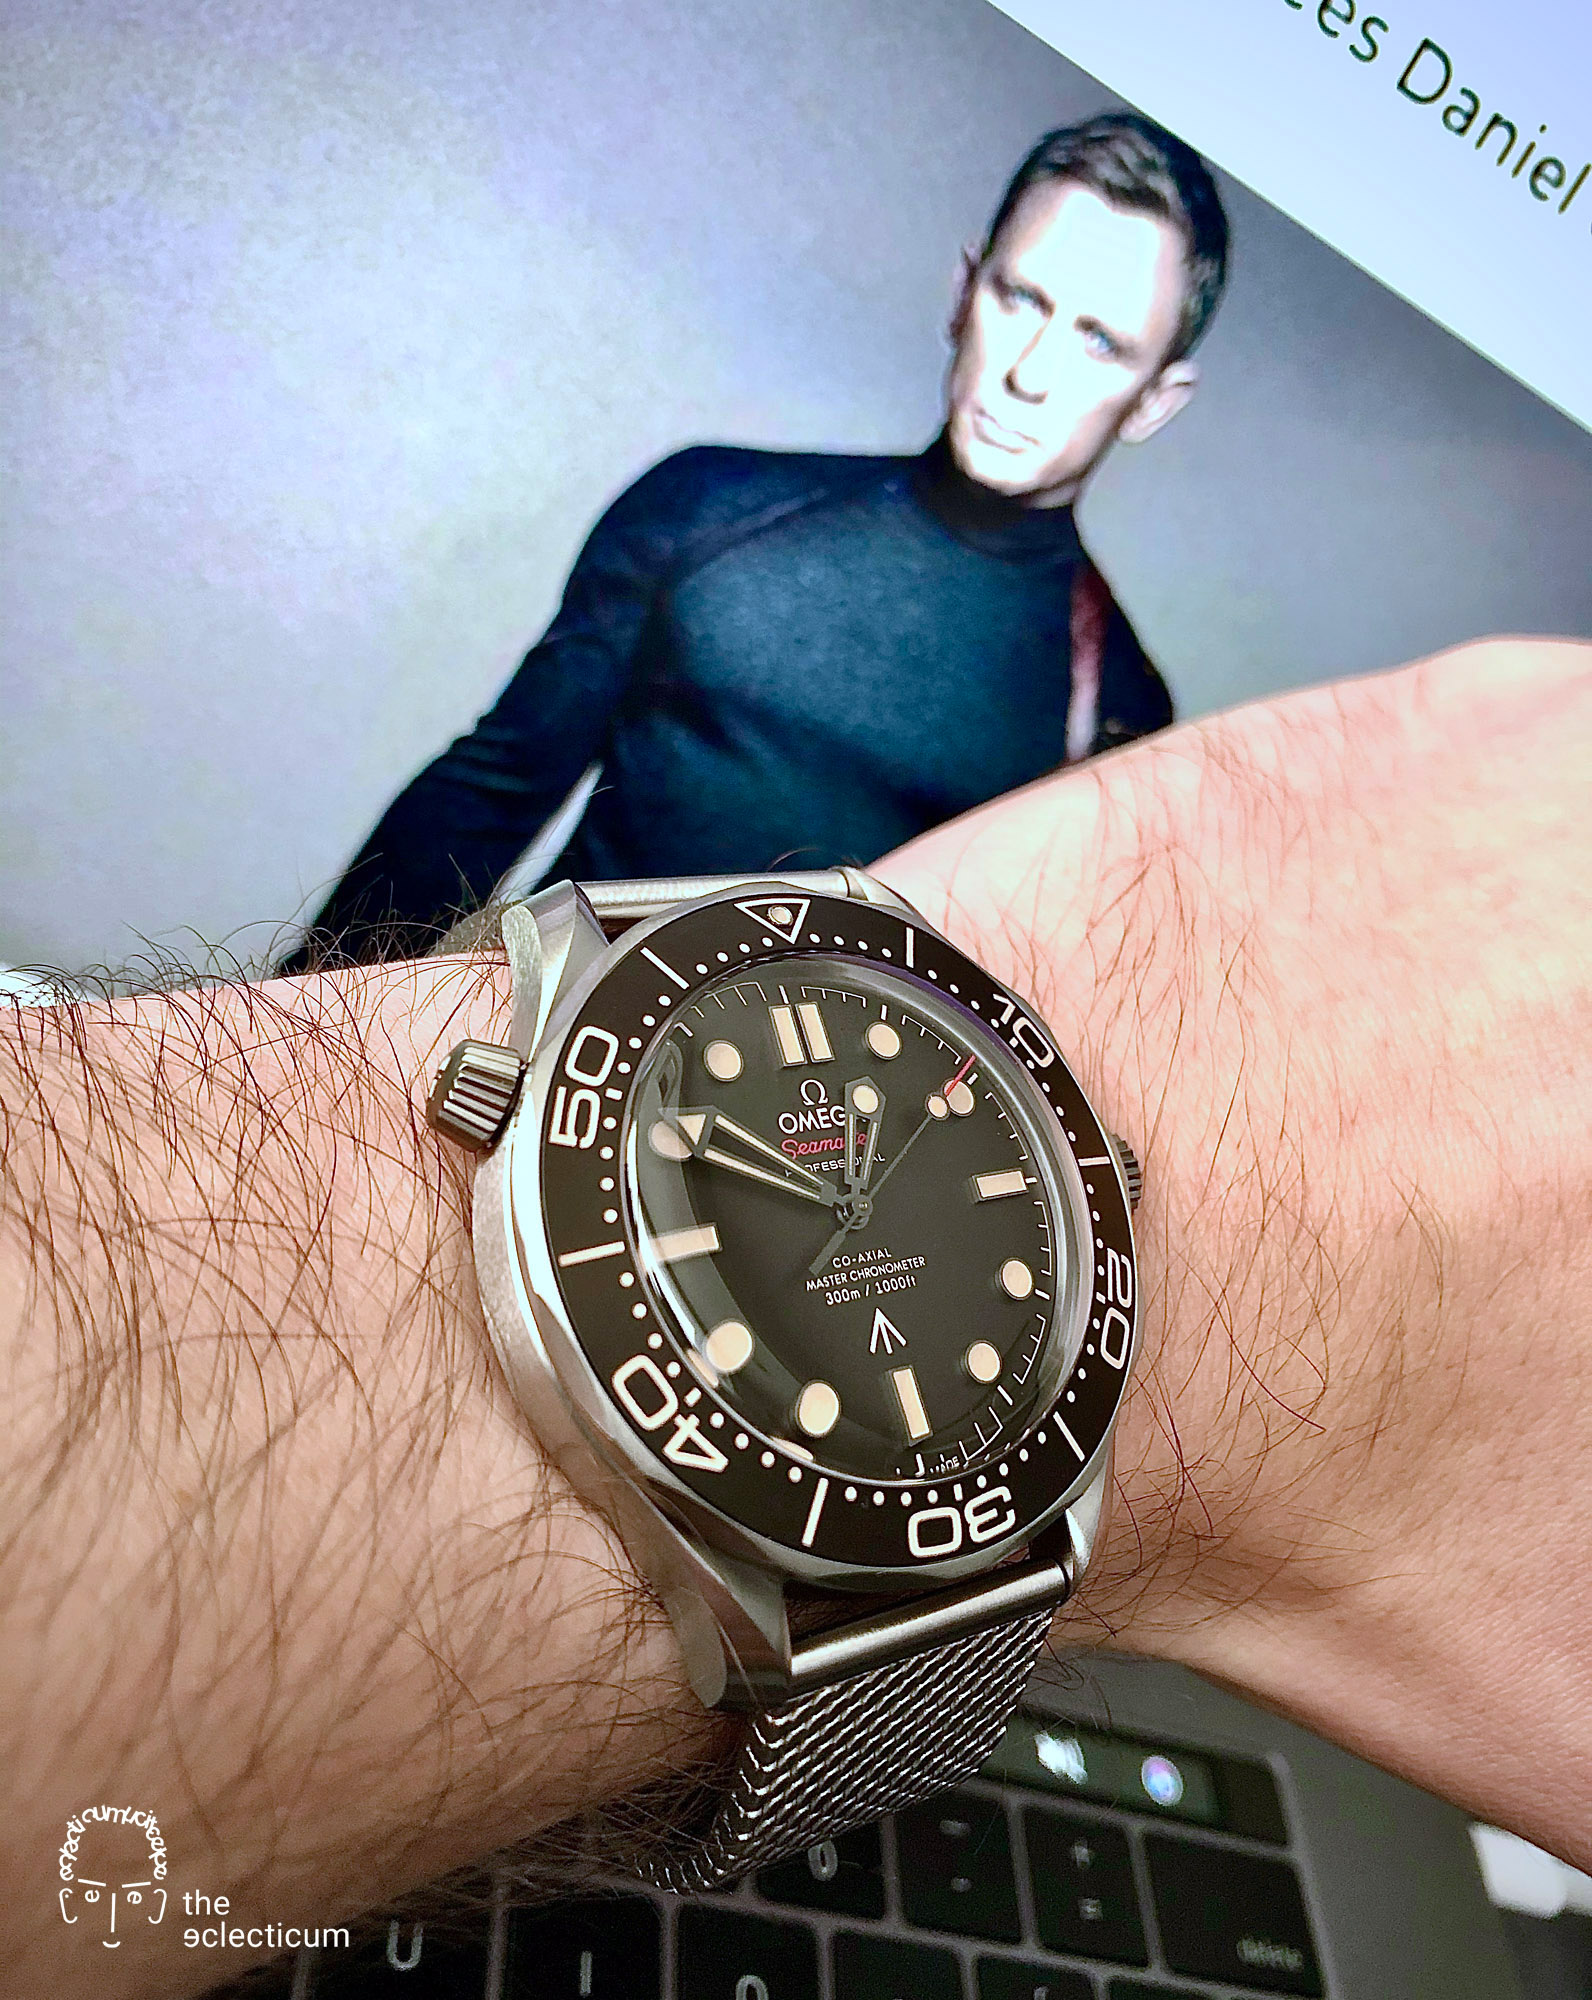 Omega, Seamaster, Seamaster Diver, 300M, Omega 007, Omega James Bond, James Bond, 007, No Time to Die, Seamaster 300M, Omega Seamaster, James Bond 007, 007 Edition, Titanium Grade 2, NAIAD LOCK-System, METAS certified, Co‑Axial Master Chronometer, Calibre 8806, NATO strap, military timepiece, double-0 agents, NAIAD, Bond-Factor